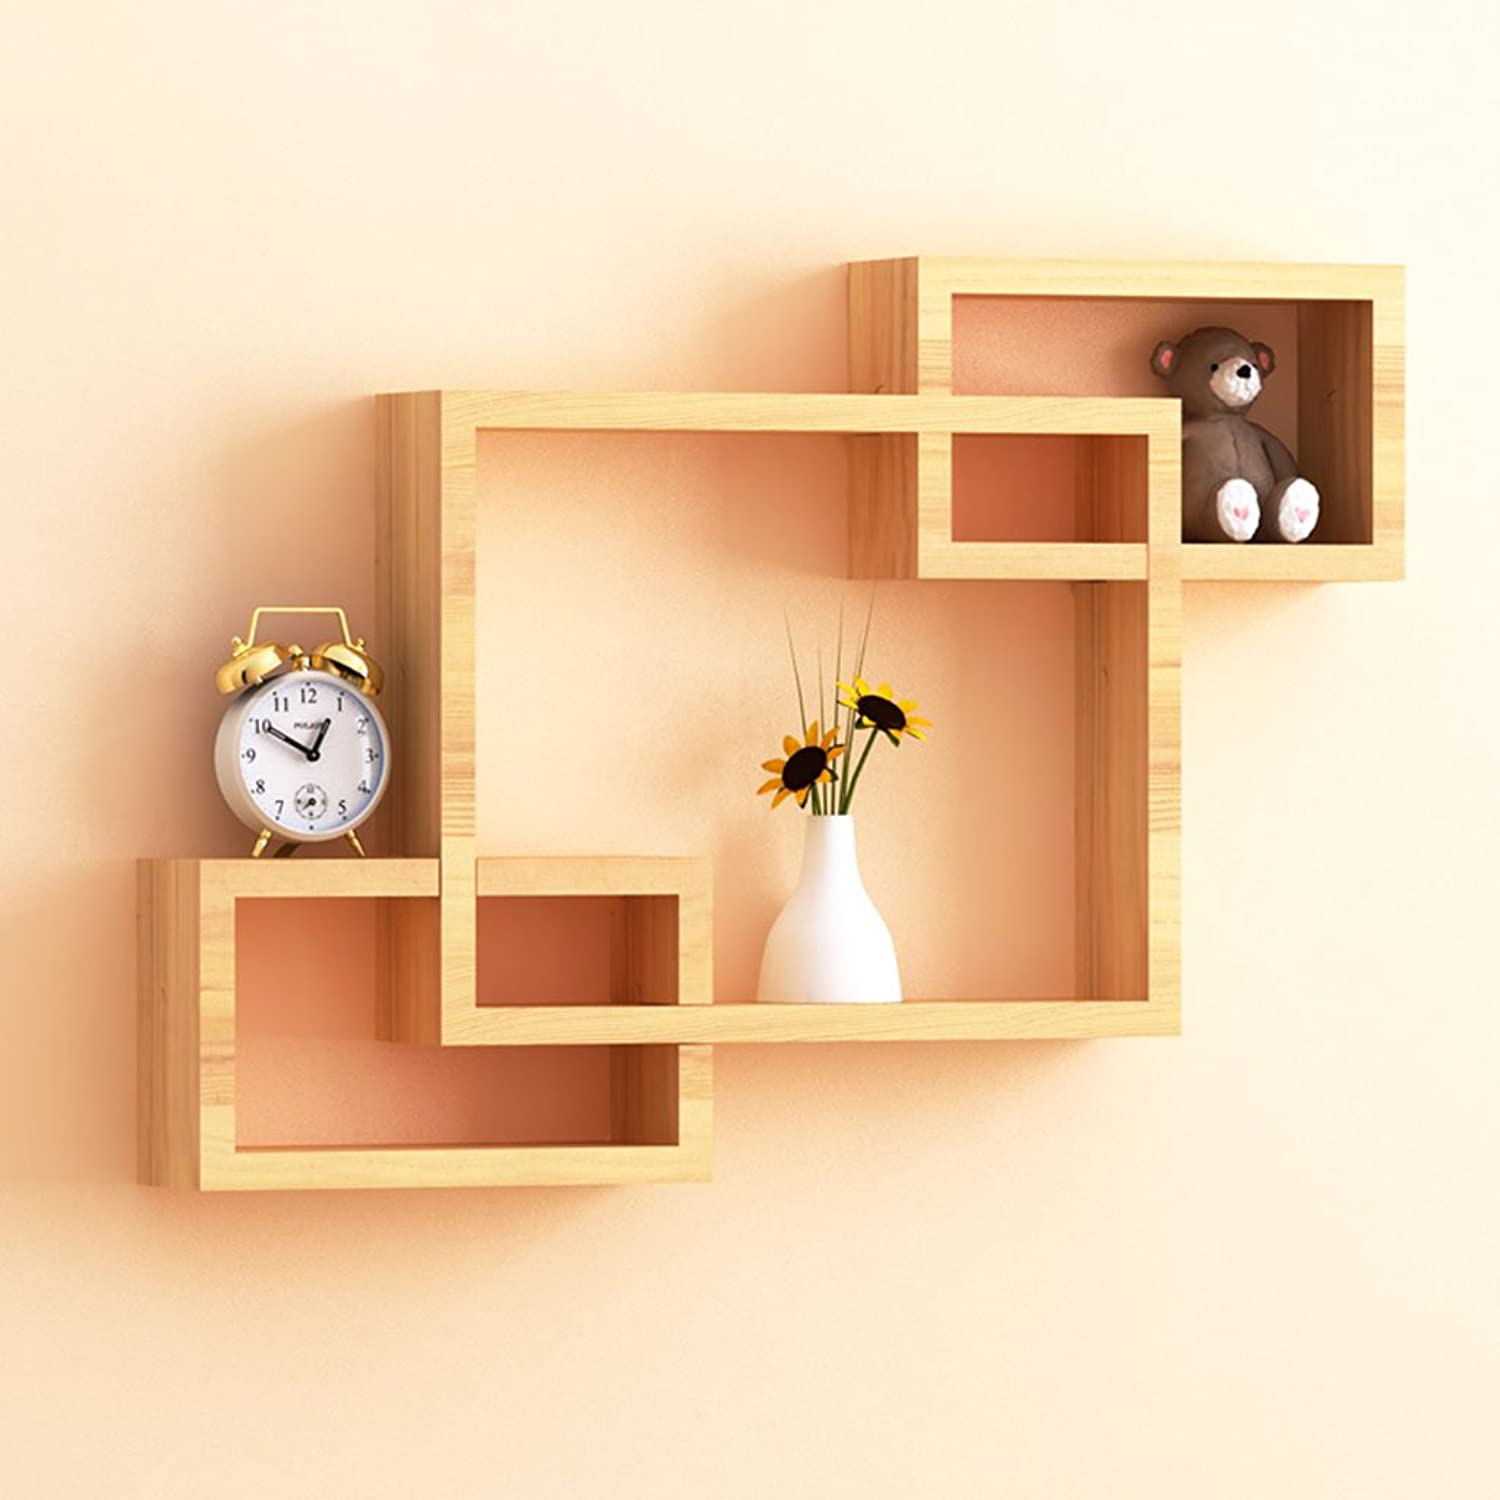 Wooden Wall-Mounted Shelves, Small Succulent Plants Stand, Width 9cm -by TIANTA